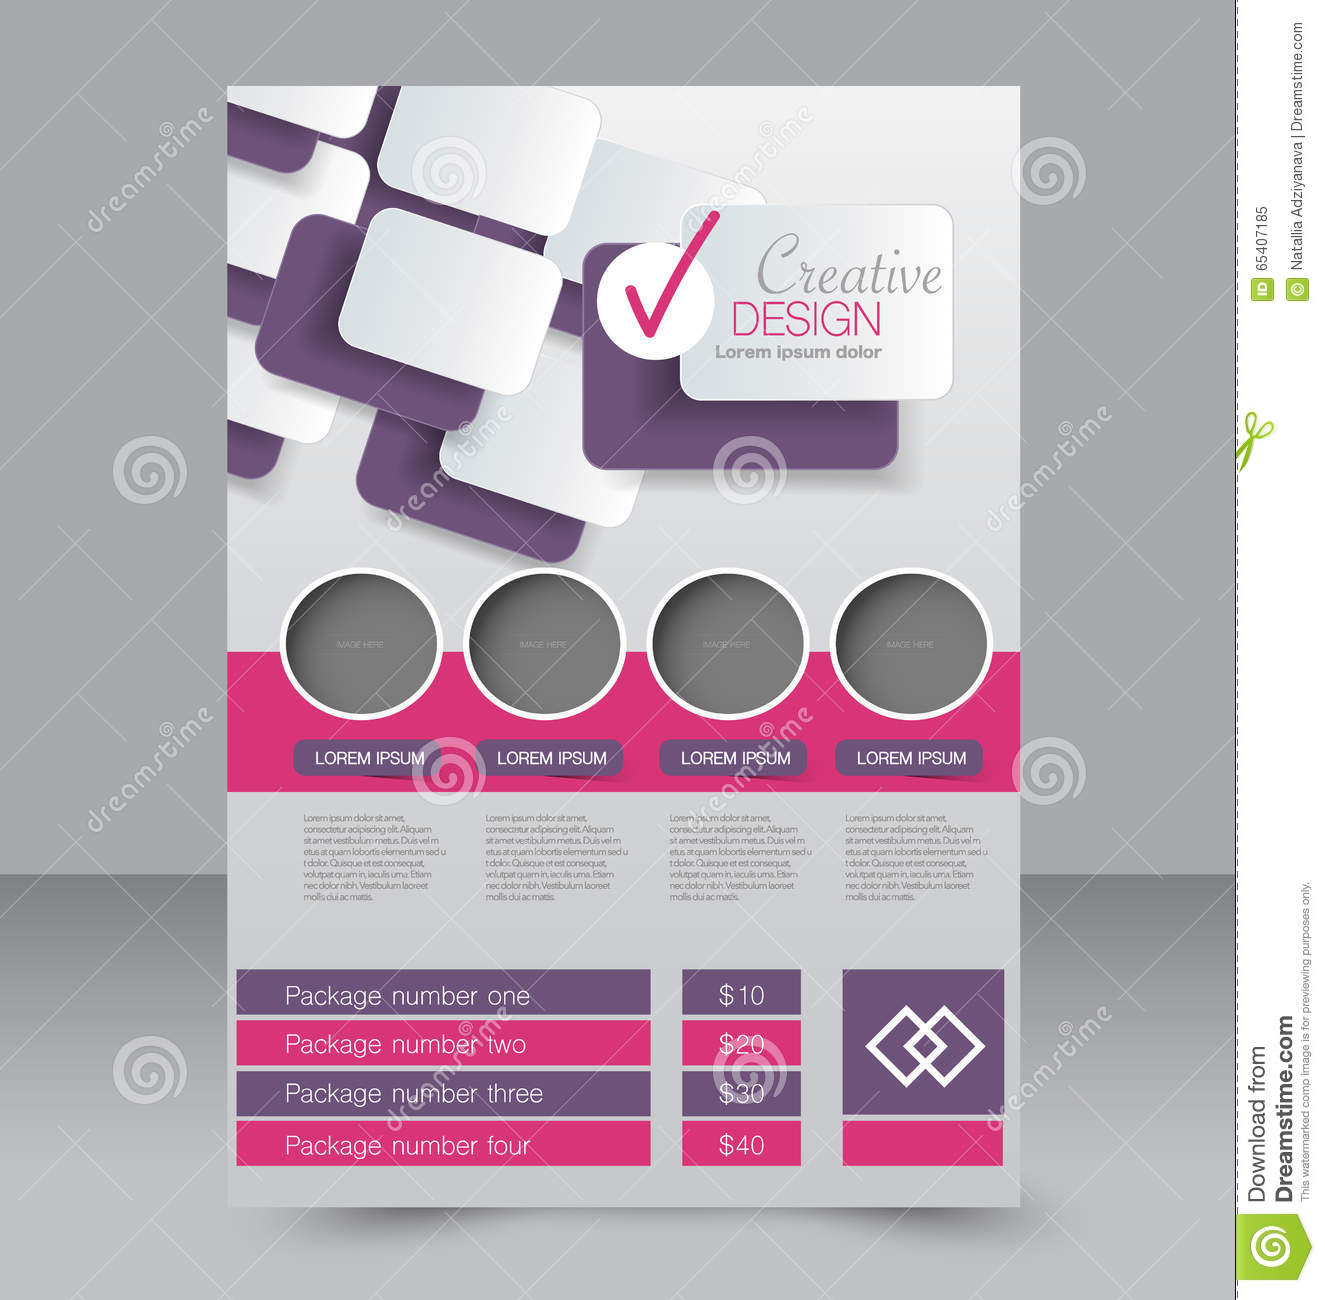 Poster design business - Free A4 Poster Design Flyer Template Business Brochure Editable A4 Poster For Design